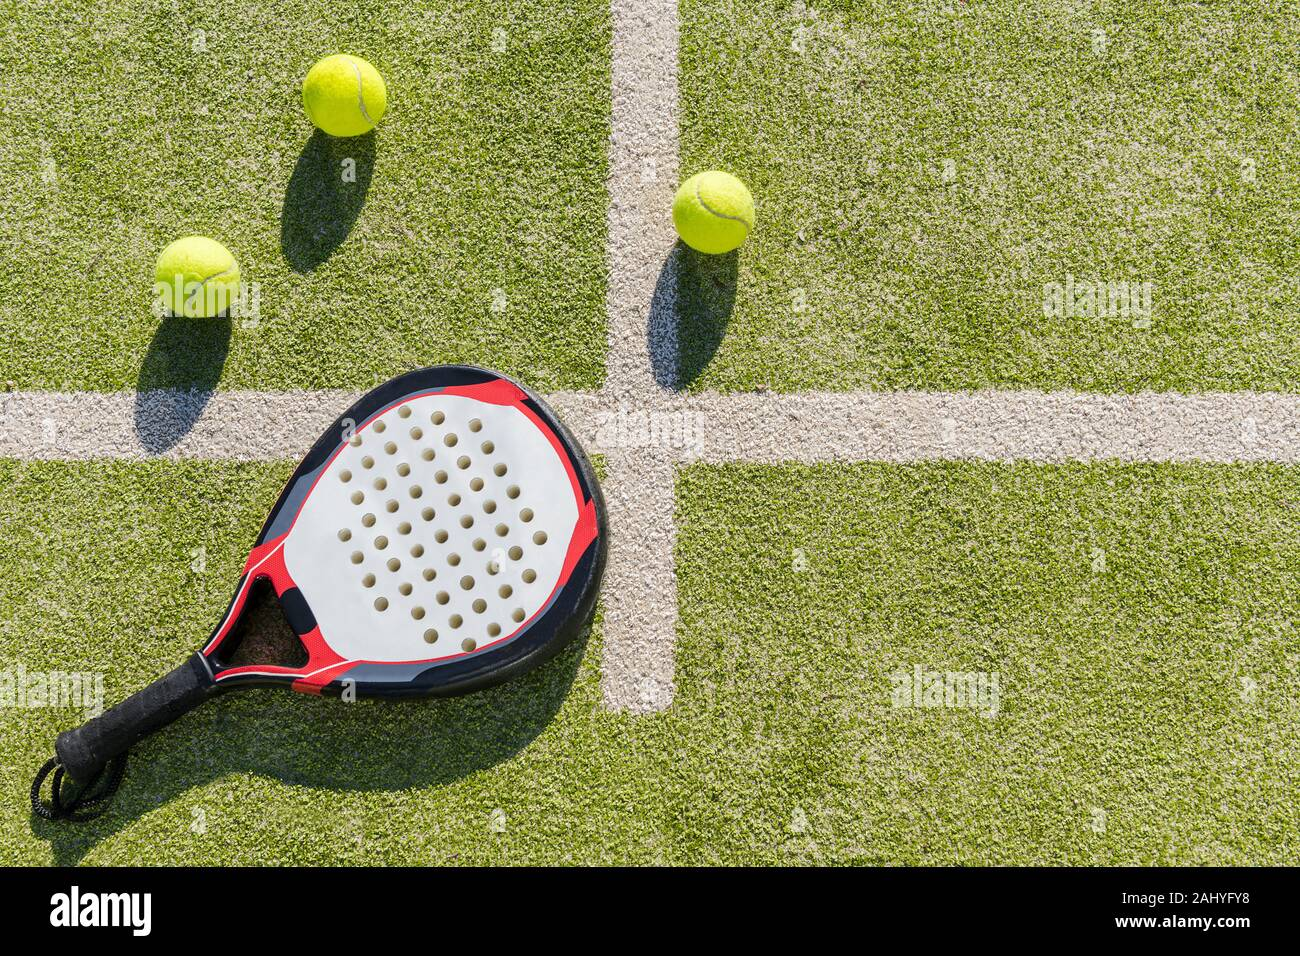 top view of a paddle tennis racket and balls on court of artificial turf, indoor sports concept and sporty lifestyle Stock Photo